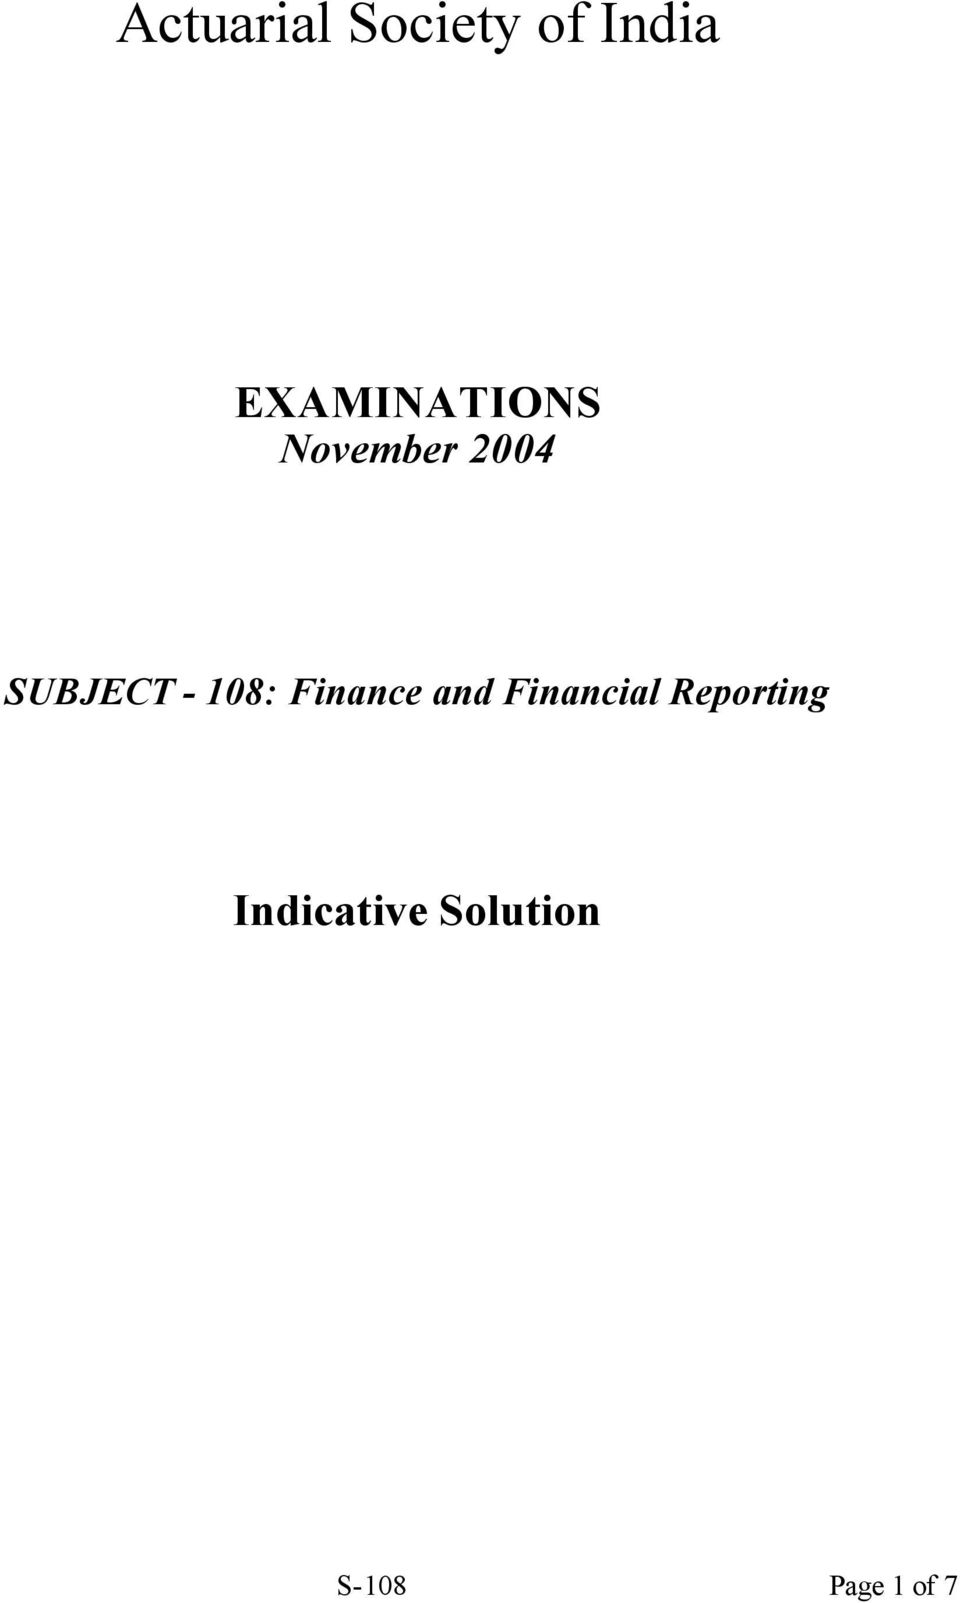 - 108: Finance and Financial